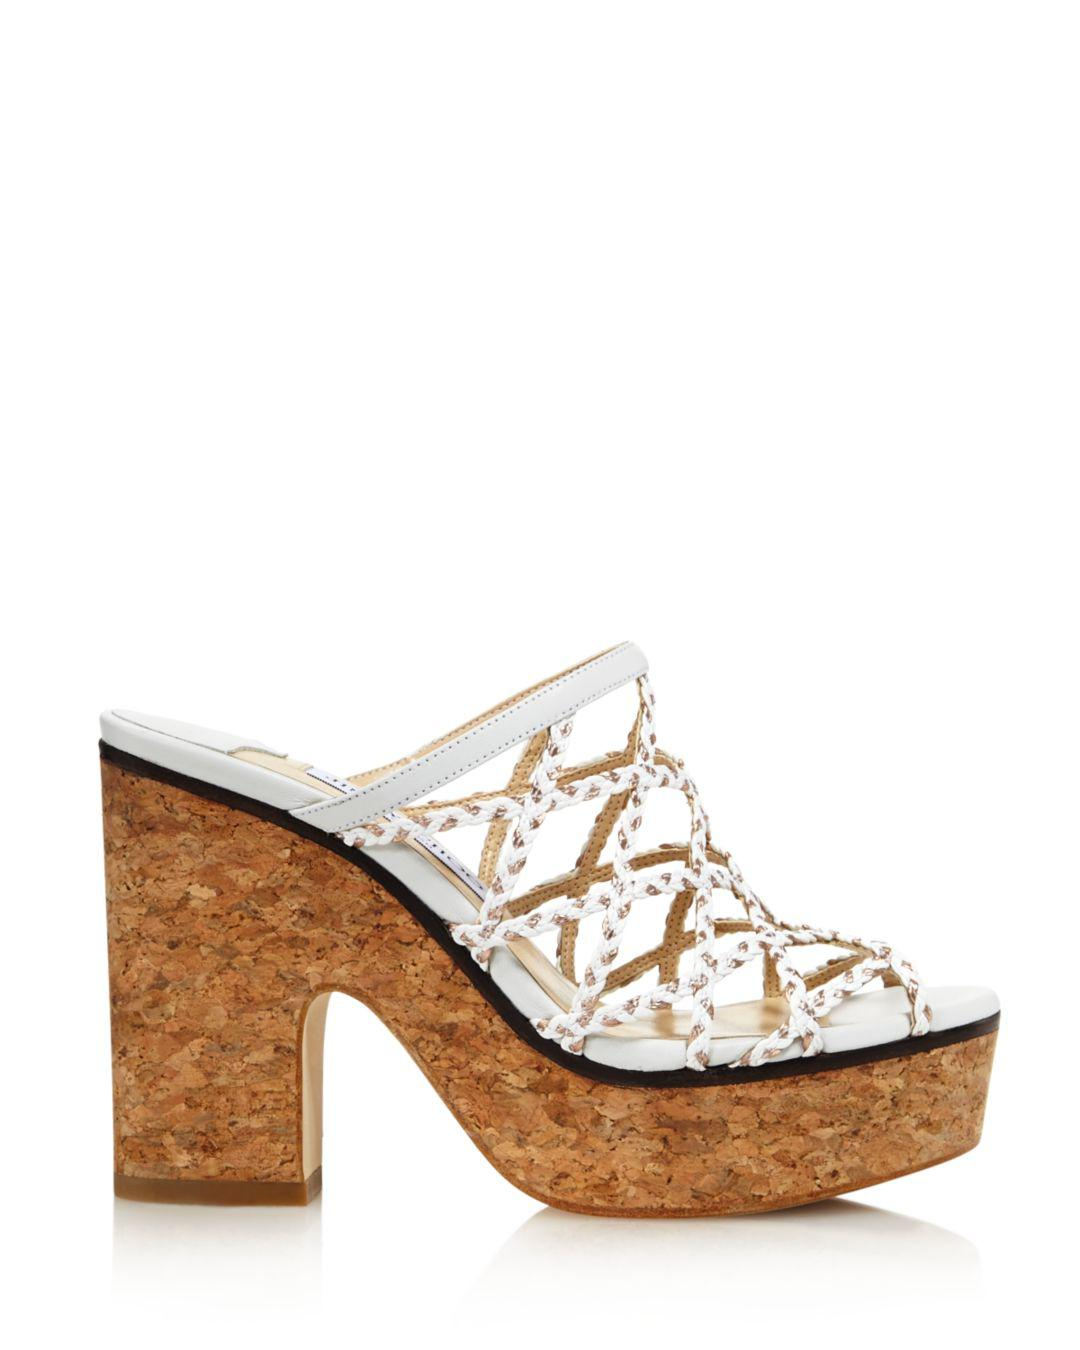 c7691a82b9586 Lyst - Jimmy Choo Women s Dalina Caged Platform Sandals in White